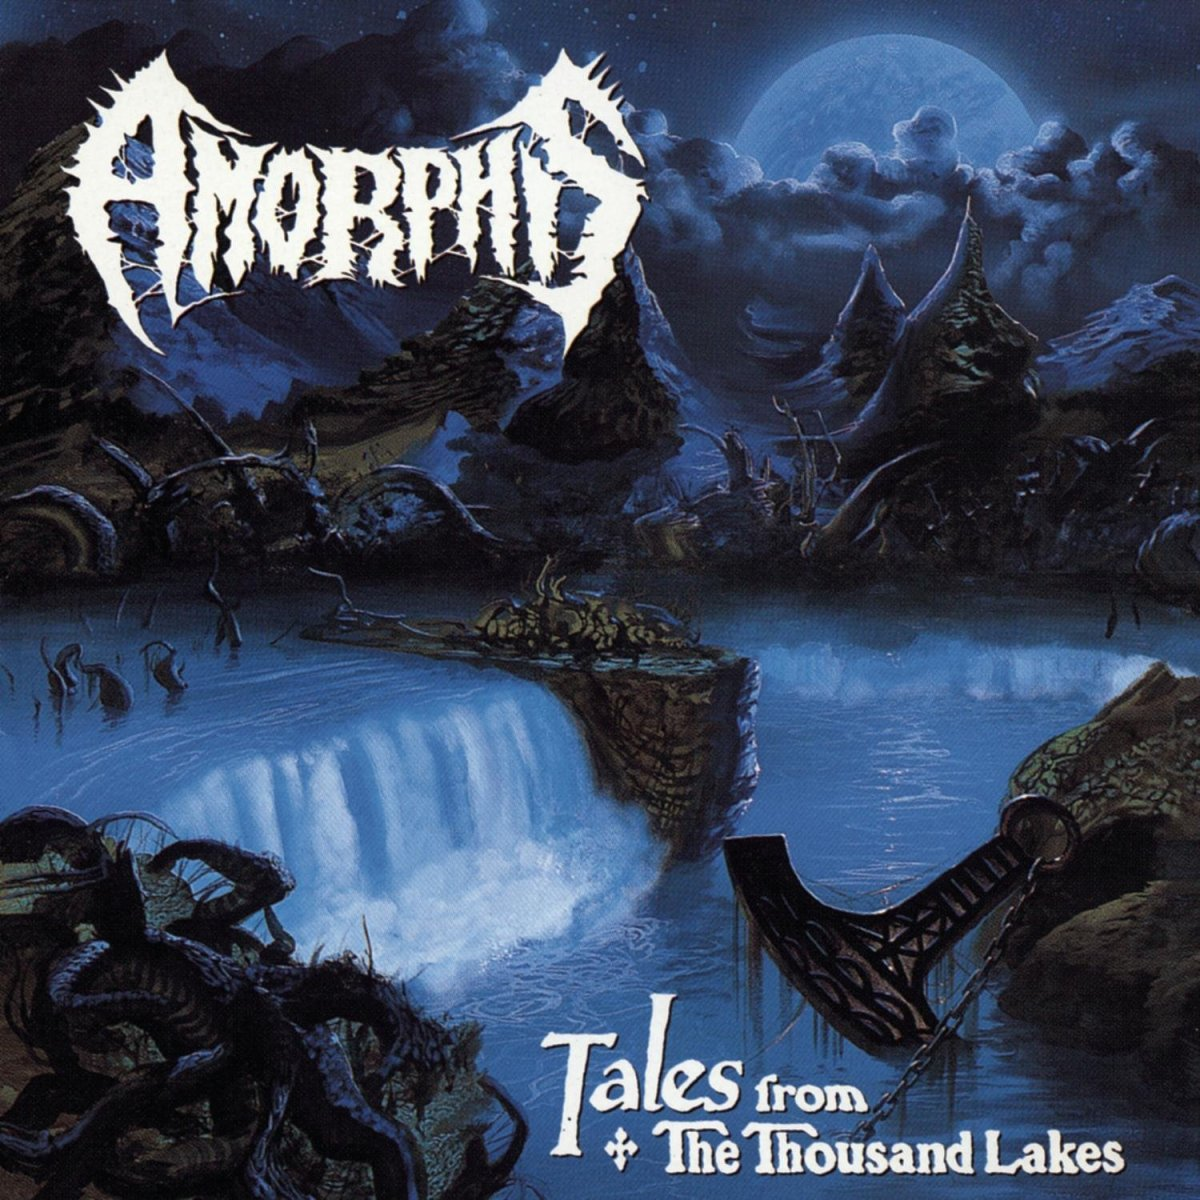 The album cover shows us an example of a beautiful waterfall as the water goes into a river. The moon can be seen in the photo as well and it is just ahead of those trees.